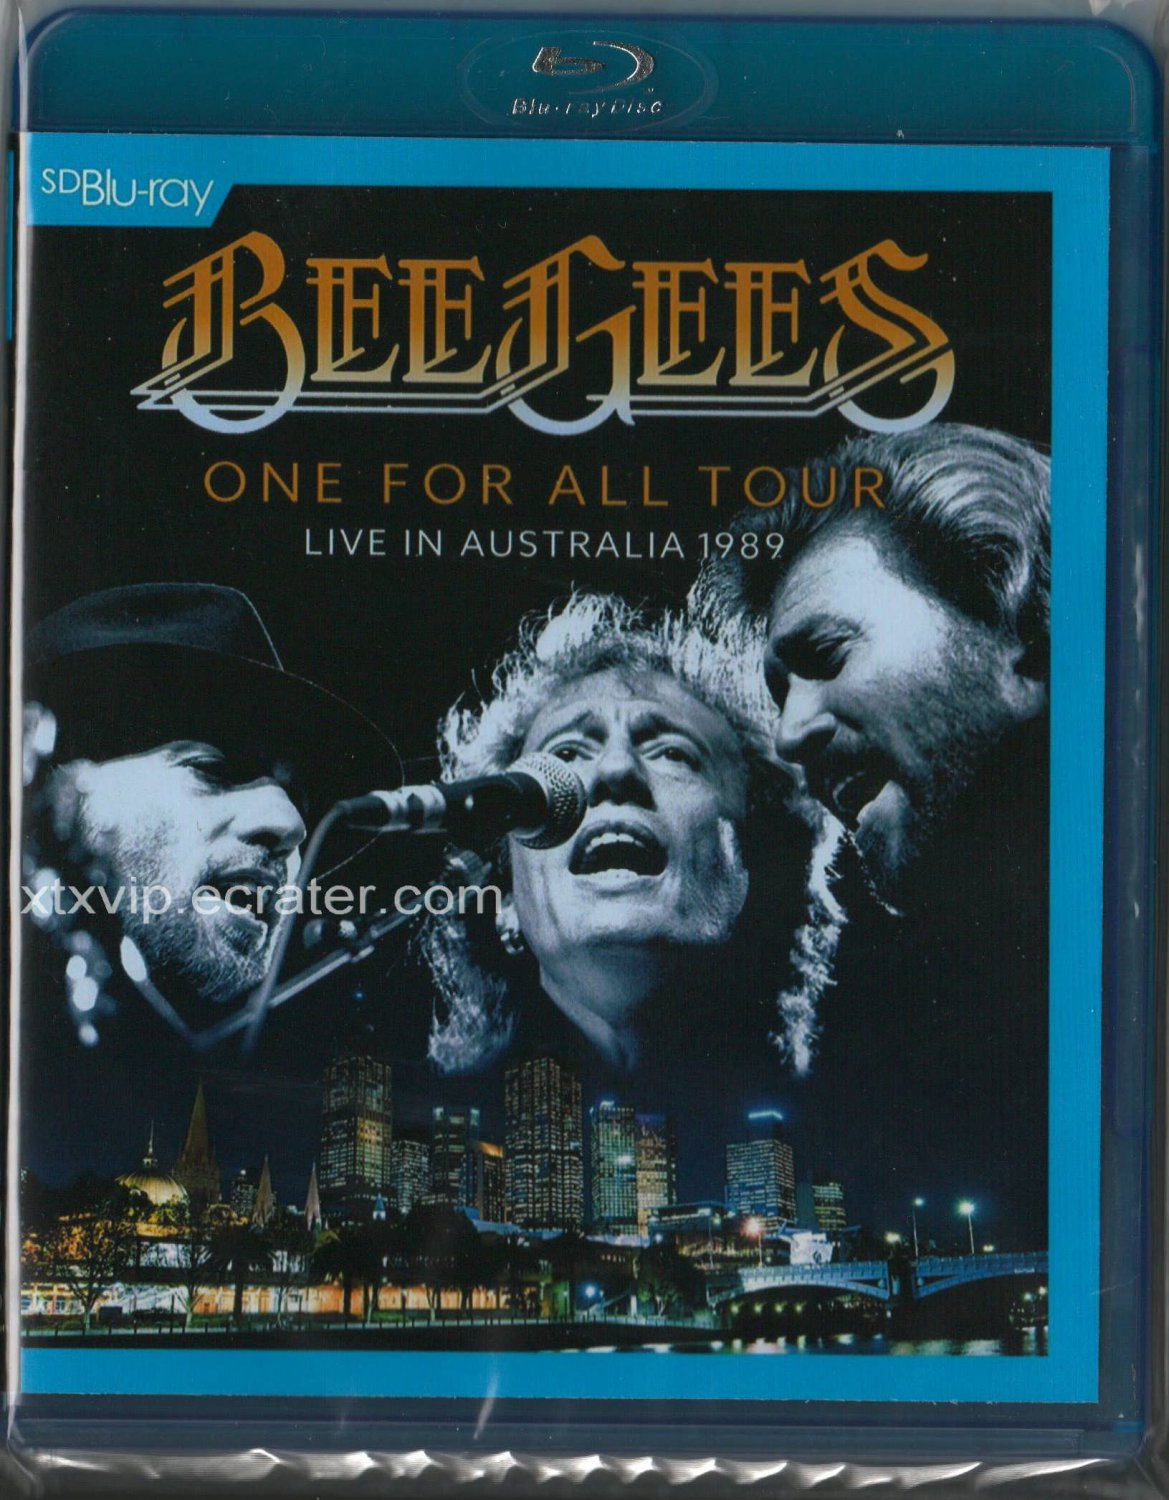 Bee Gees - One For All Tour - Live in Australia 1989 - Blu-Ray